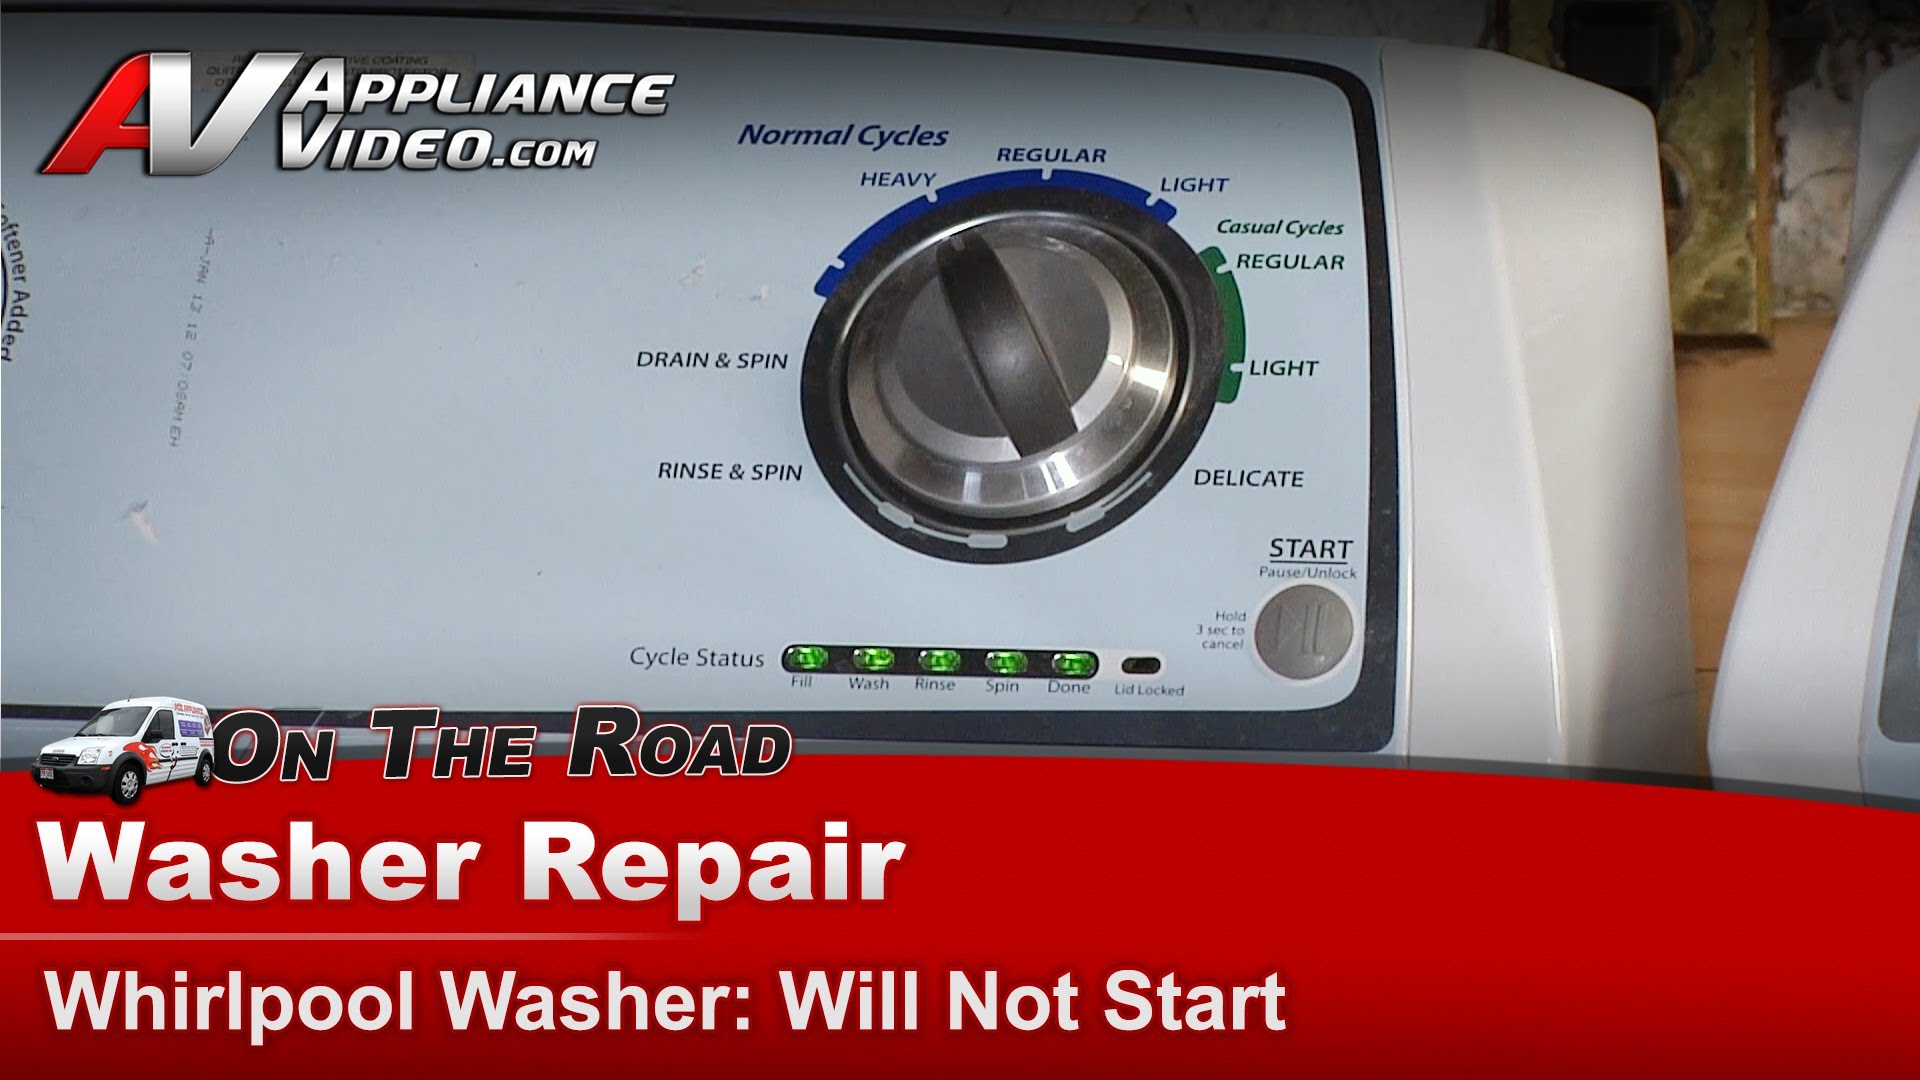 Whirlpool Wtw4800xq2 Washer Repair Does Not Start